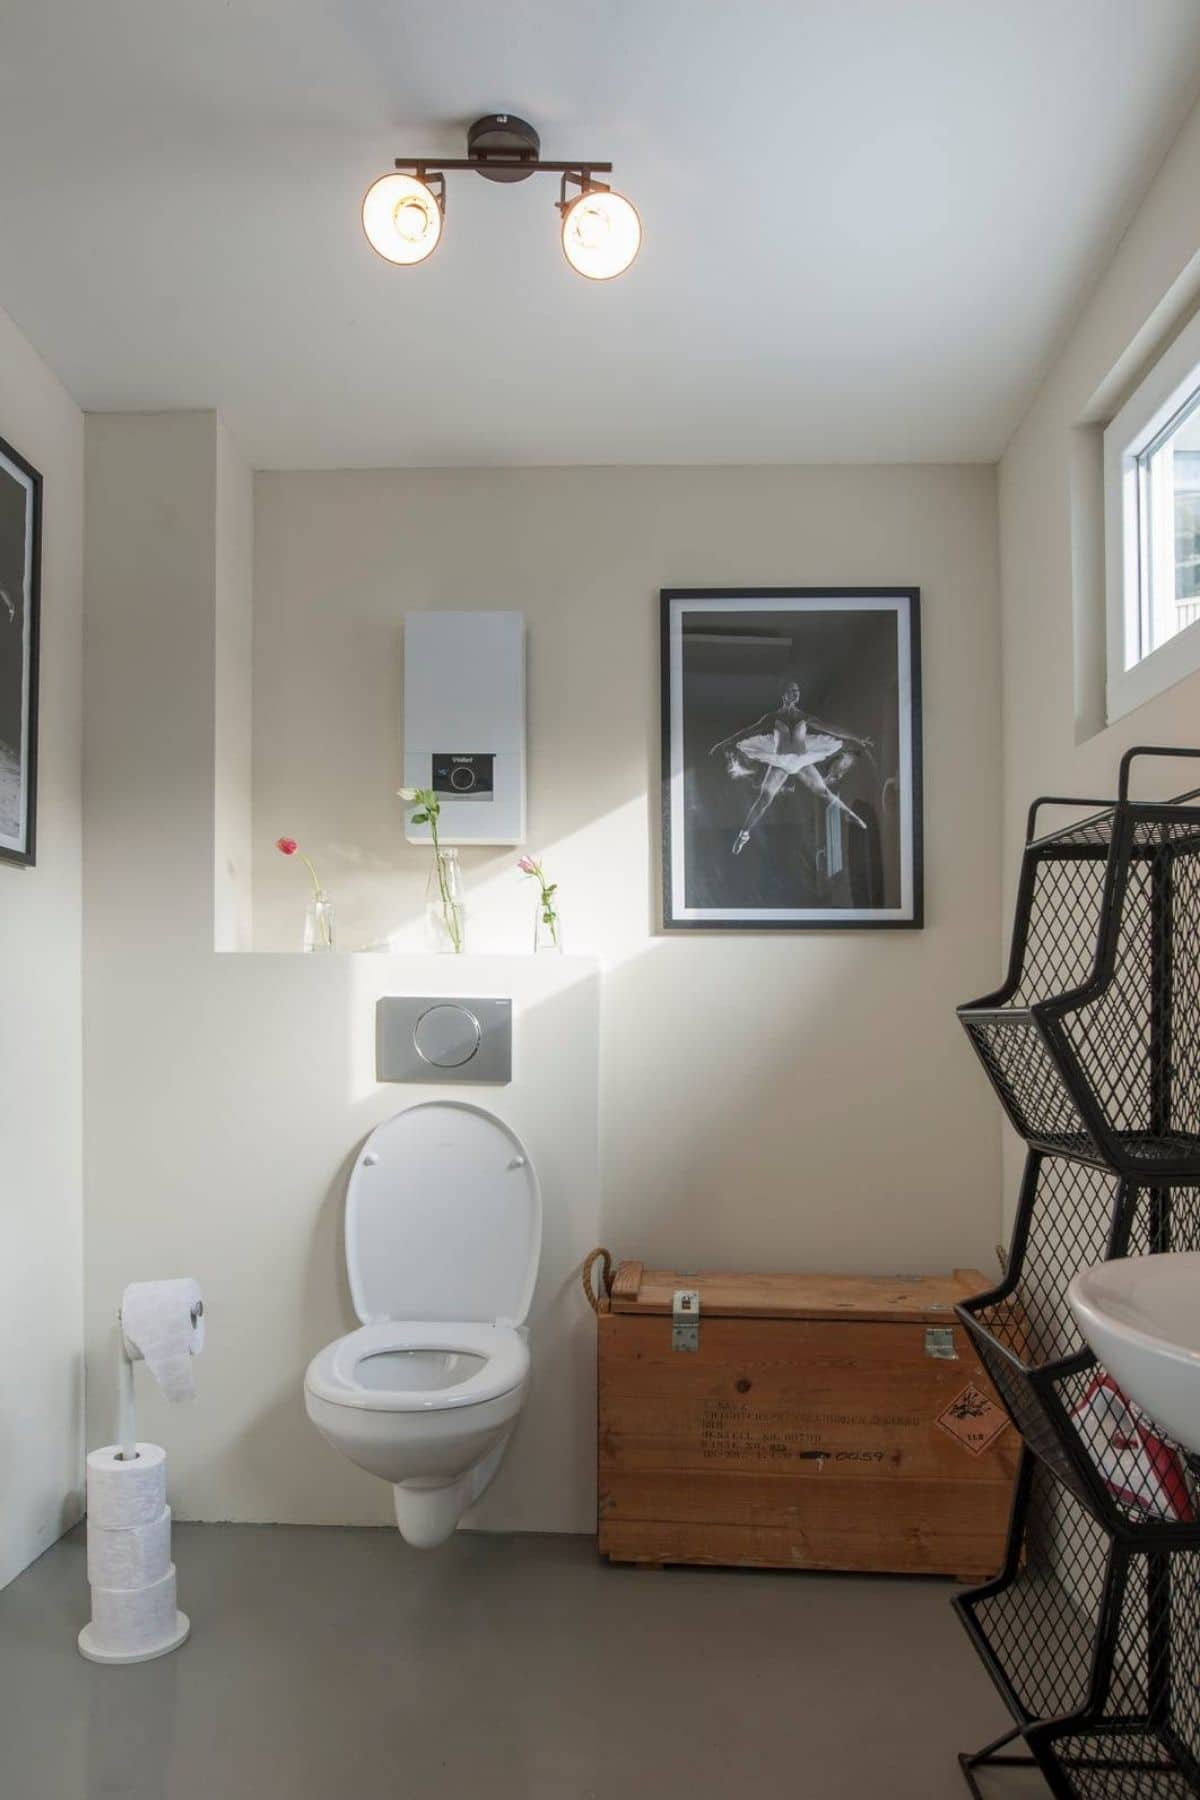 Toilet with lid up mounted on white wall next to blonde wood trunk